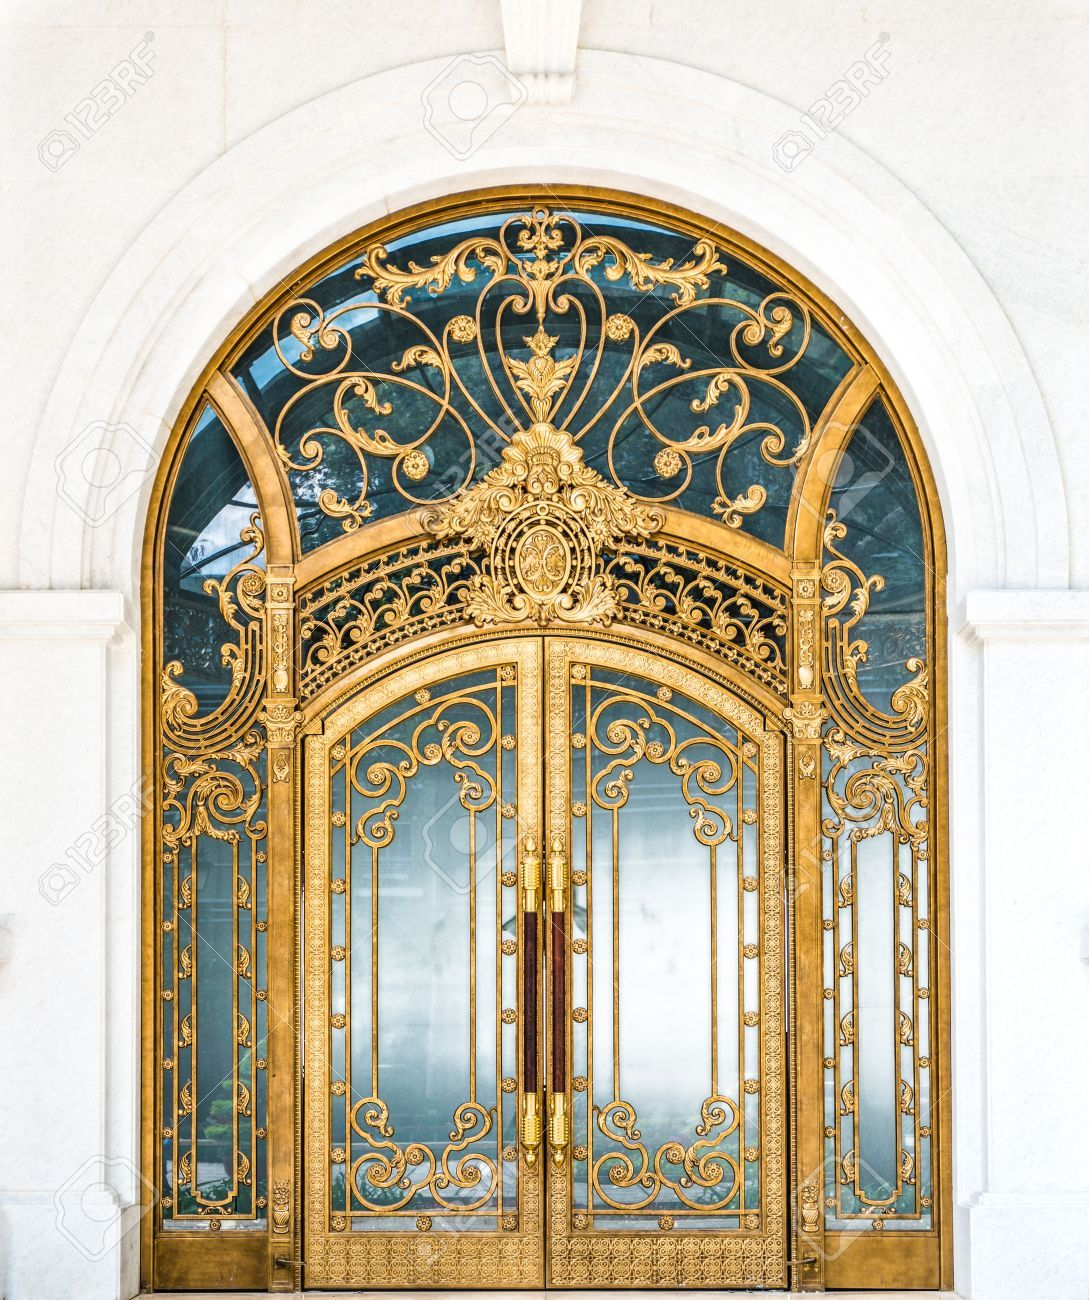 Beautiful Archway Designs For Elegant Interiors: Beautiful Arched Doorway. Door Made Of Wood, Gold And